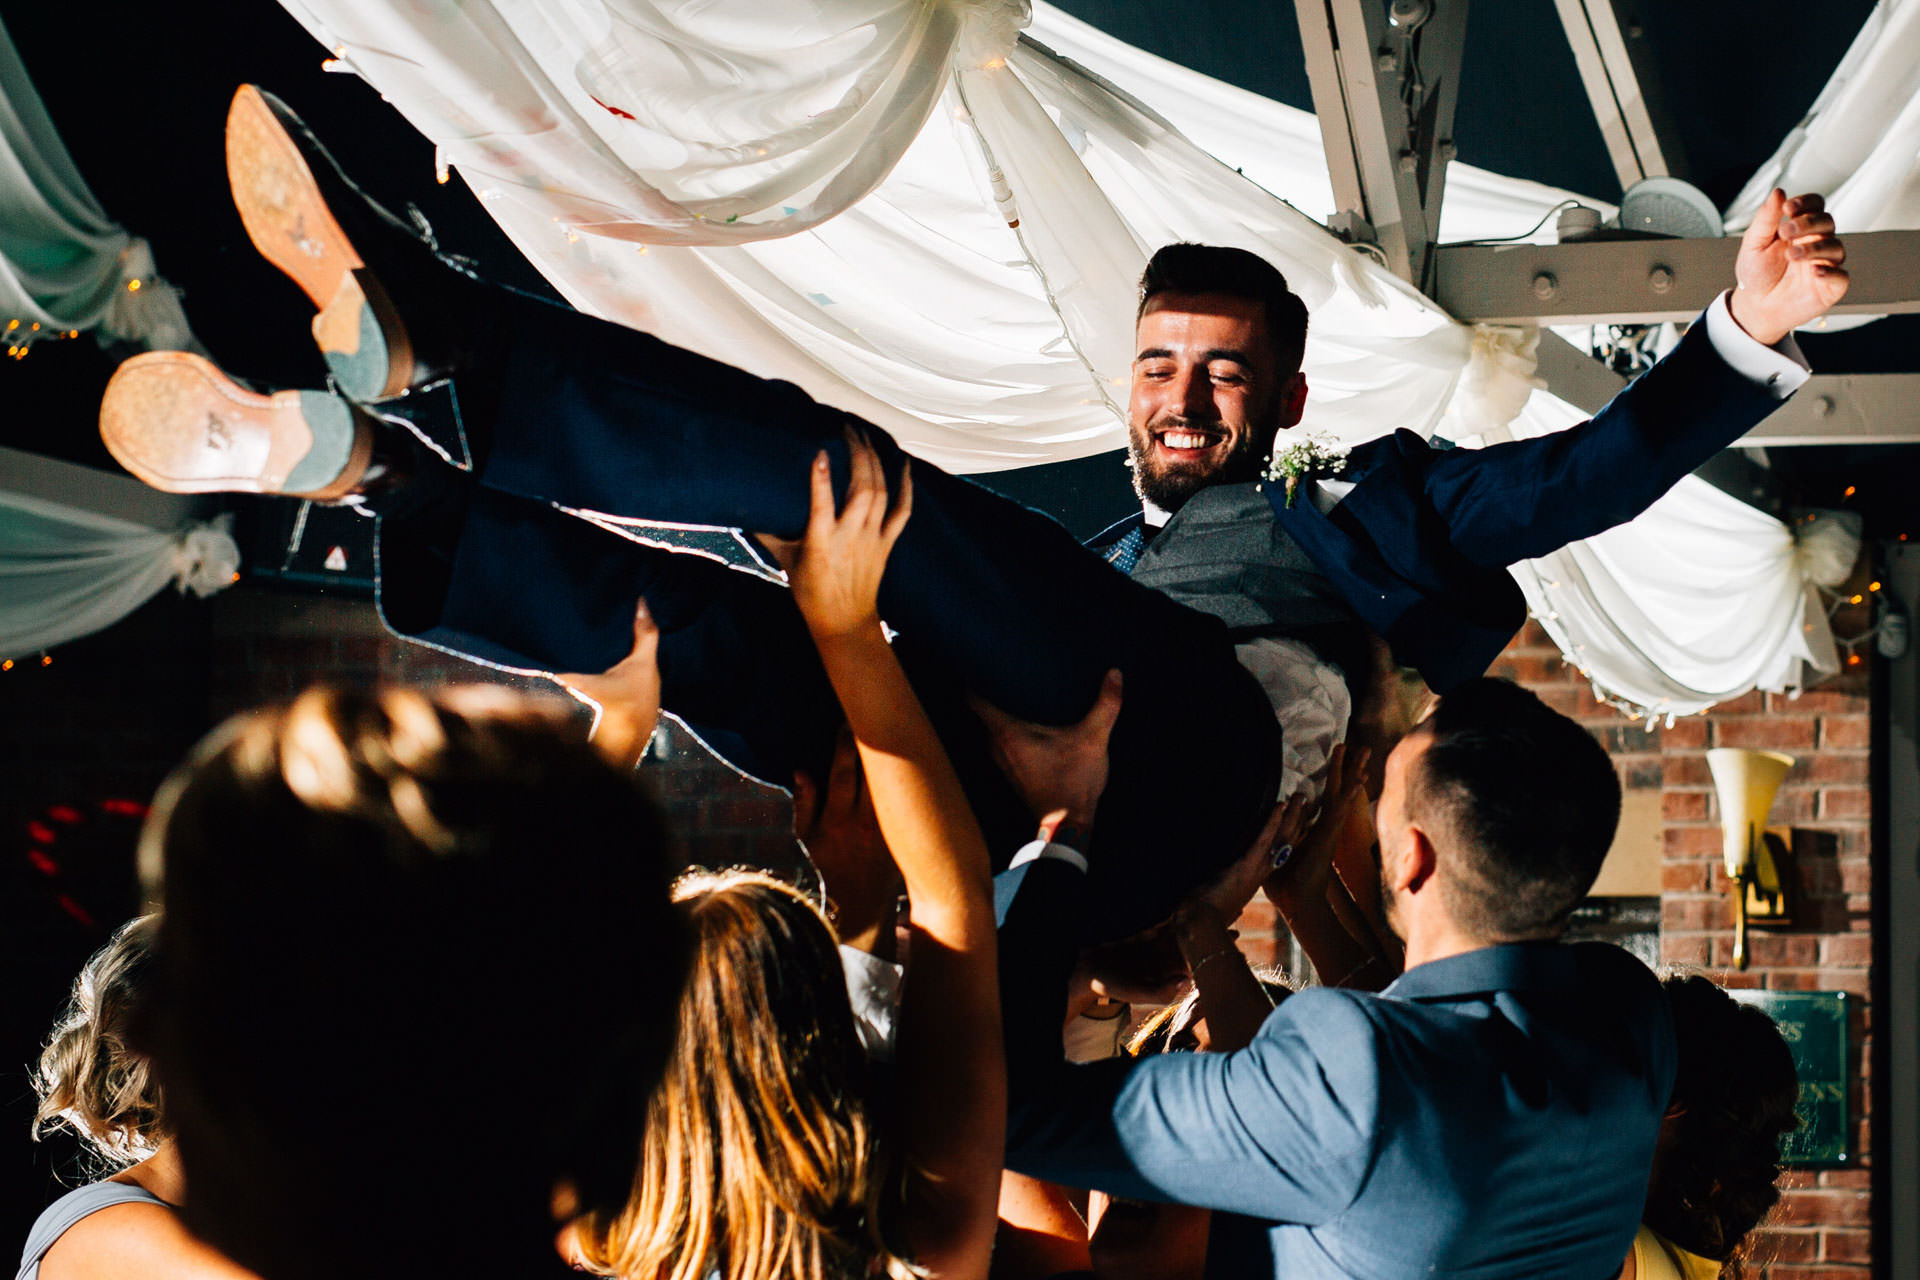 Best wedding photography 2016 - lifting up the groom in the air